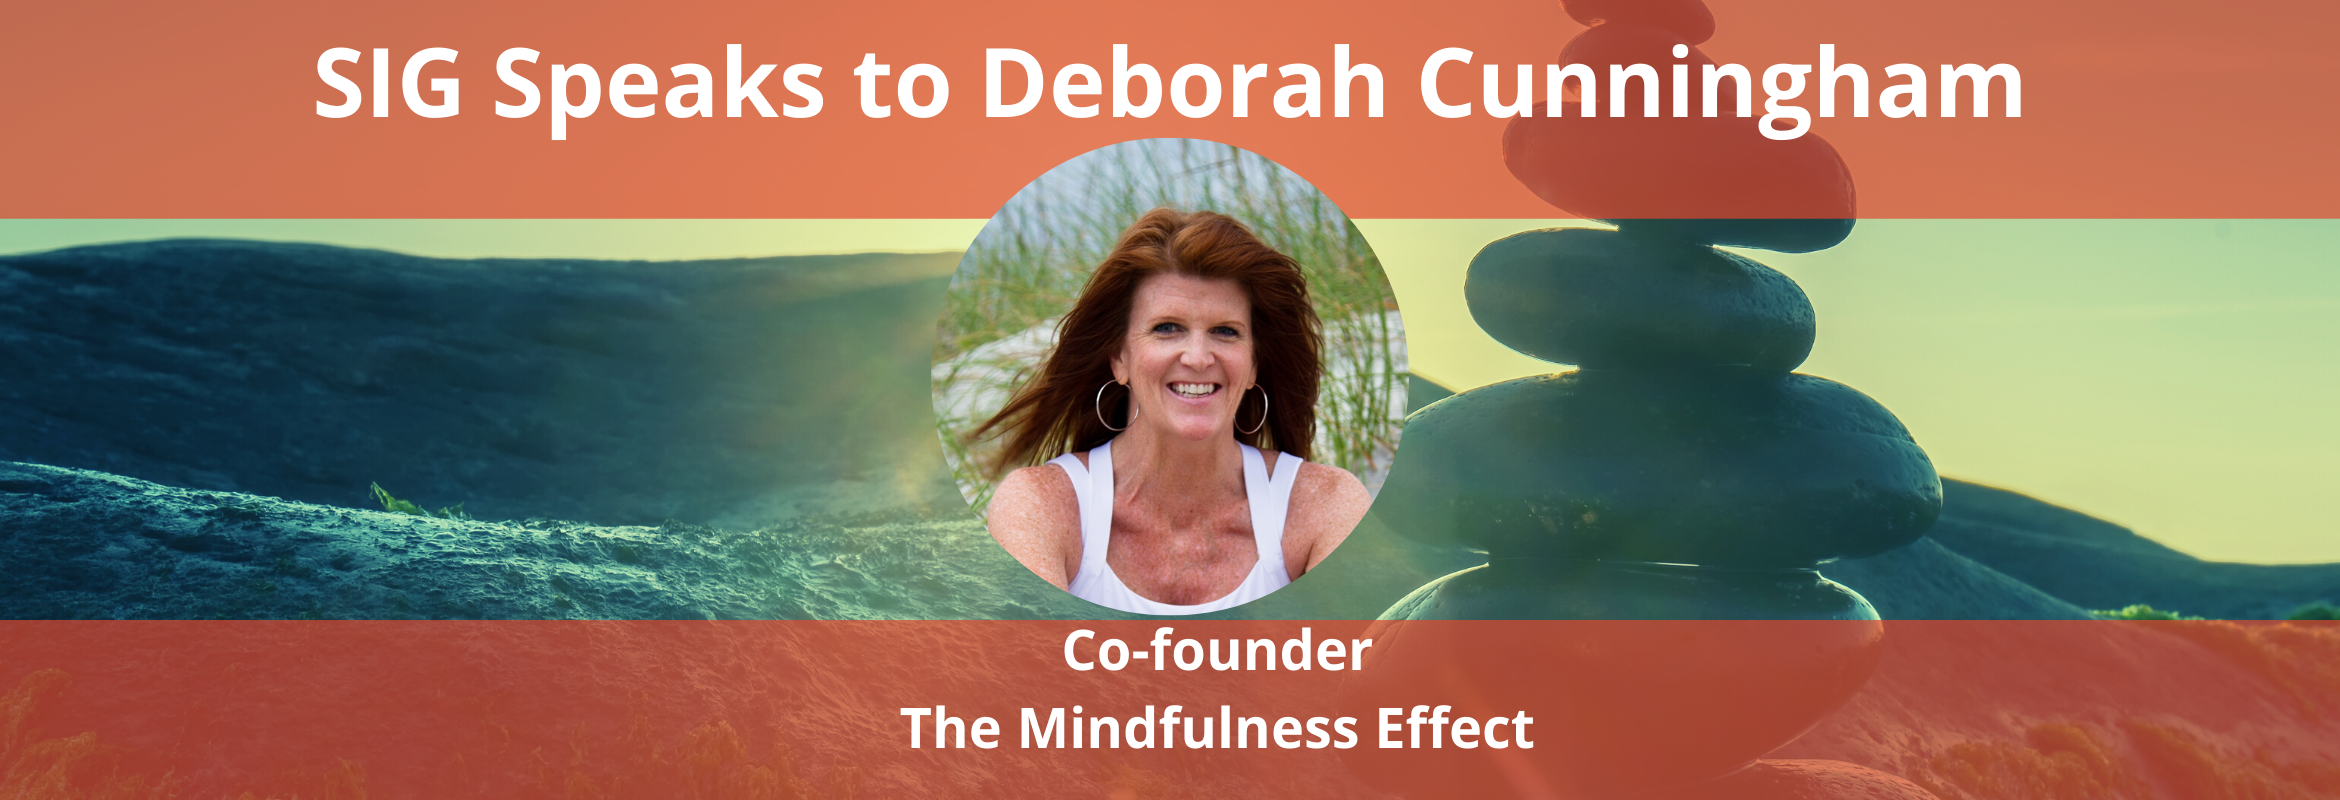 Deborah Cunningham is the Co-founder of The Mindfulness Effect